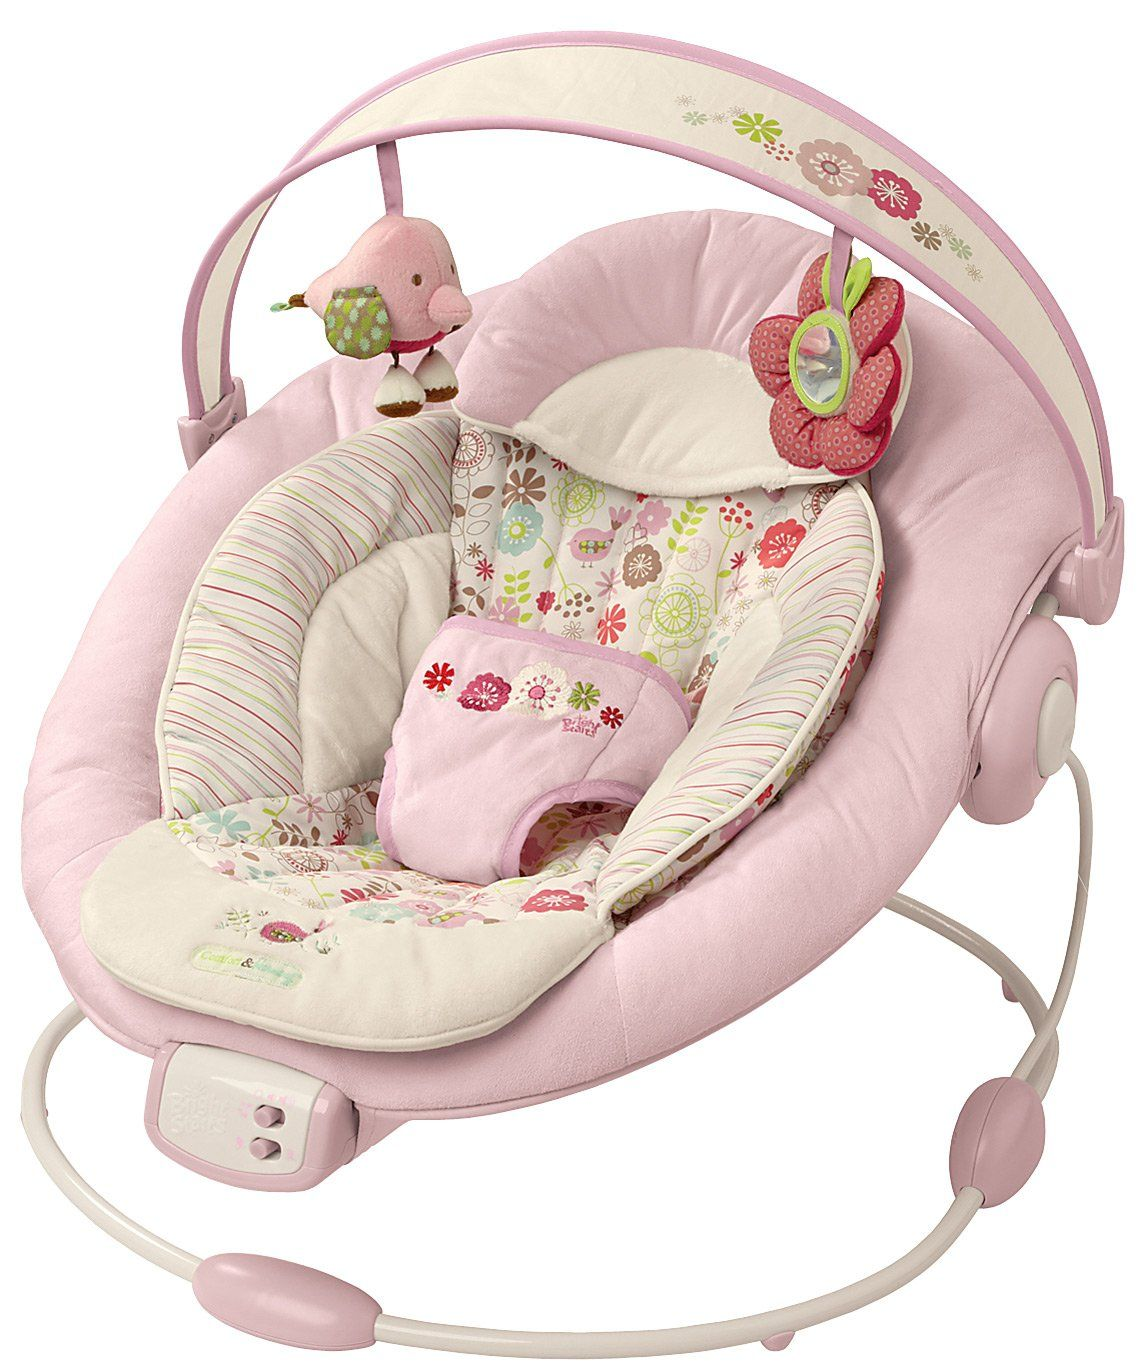 b2a82ce35 Bright Starts Comfort   Harmony Cradling Bouncer PINK